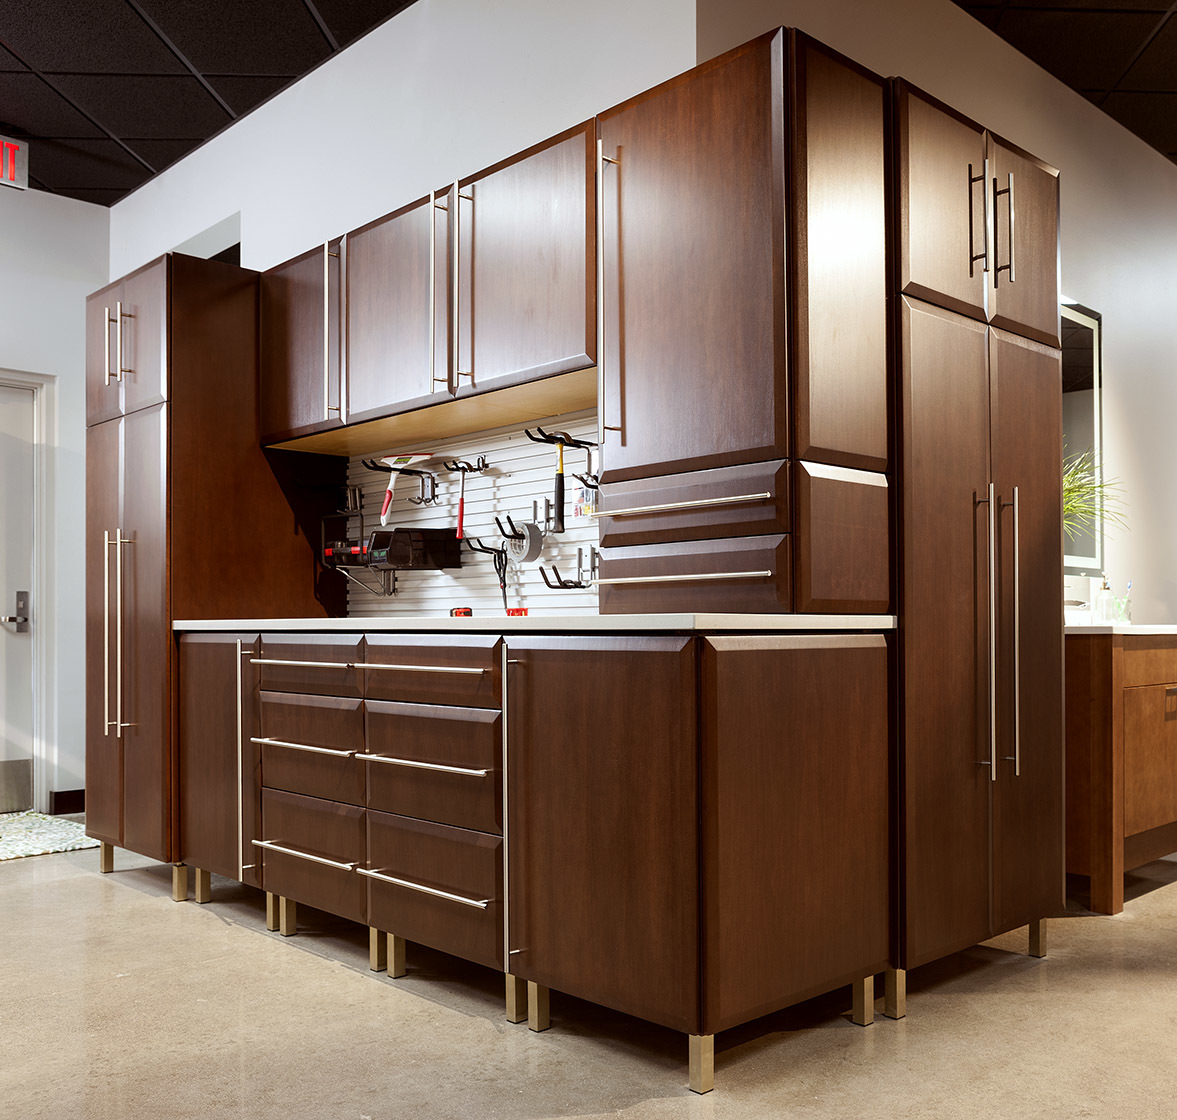 Stained workshop cabinets in Harvest by ShowplaceEVO - view 1